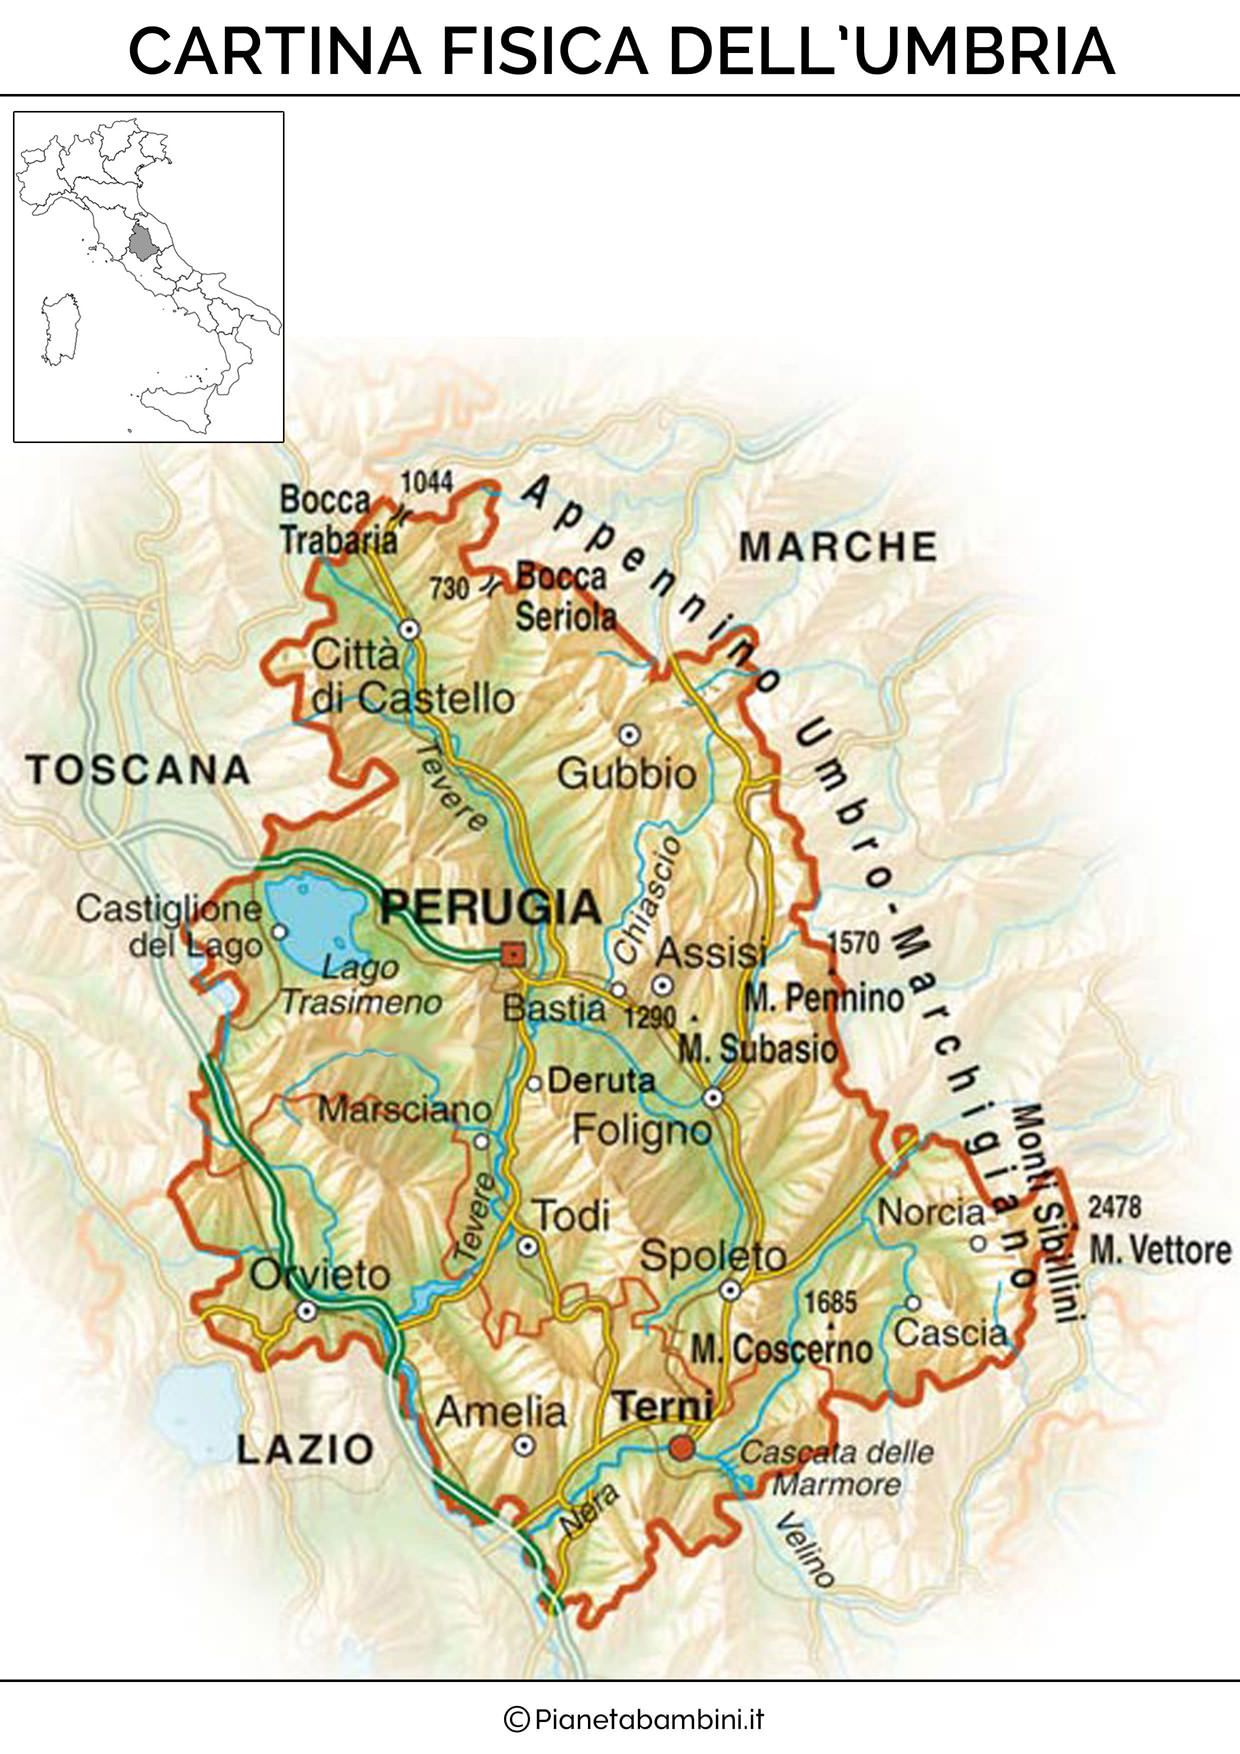 Cartina Stradale Toscana Umbria.Cartina Muta Fisica E Politica Dell Umbria Da Stampare Mappe Illustrate Umbria Mappe